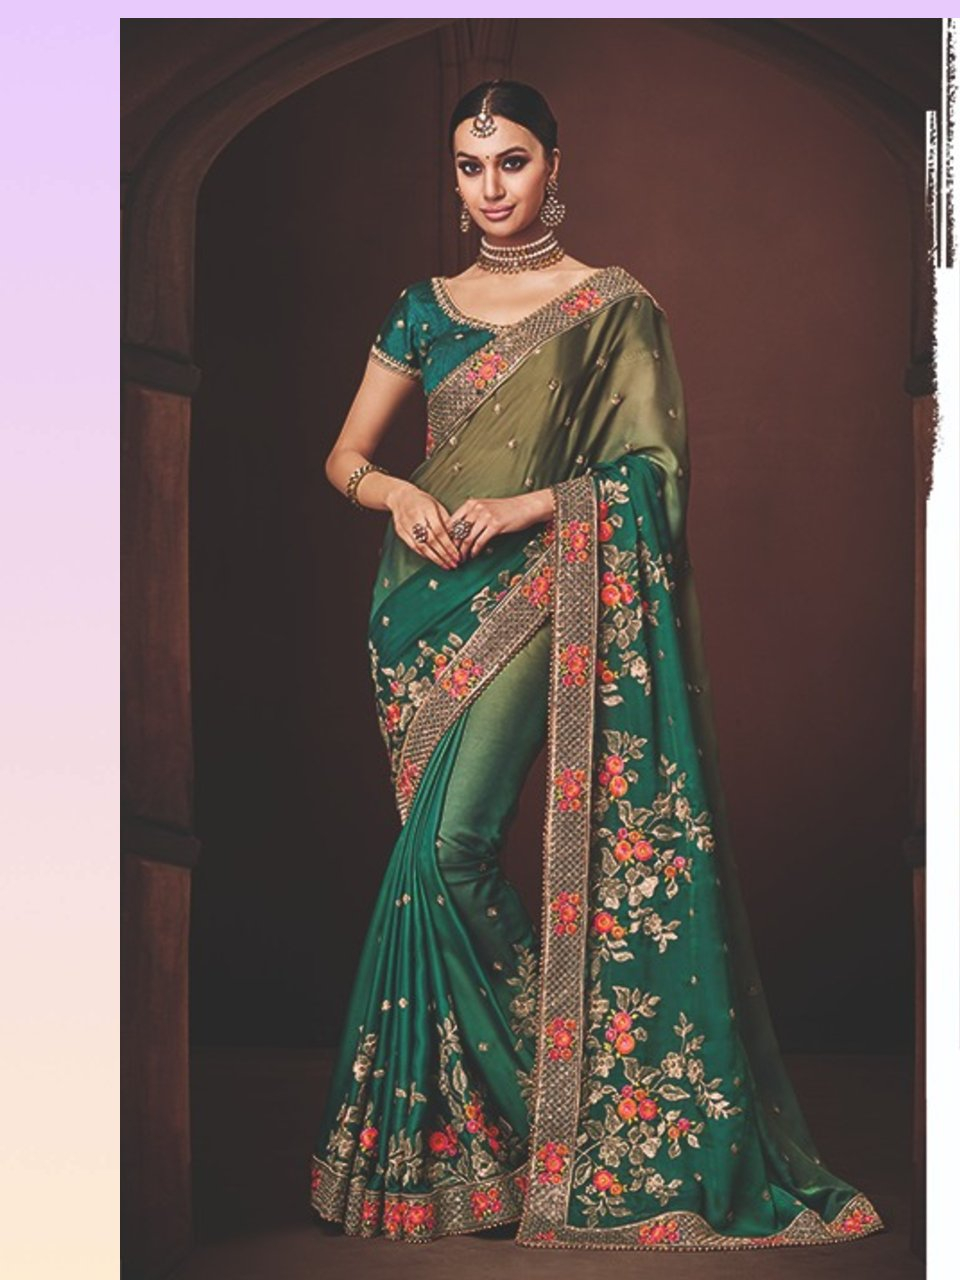 Excellent Nakkashi NAK4173 Designer Shaded Morpeach Olive Satin Georgette Saree - Fashion Nation